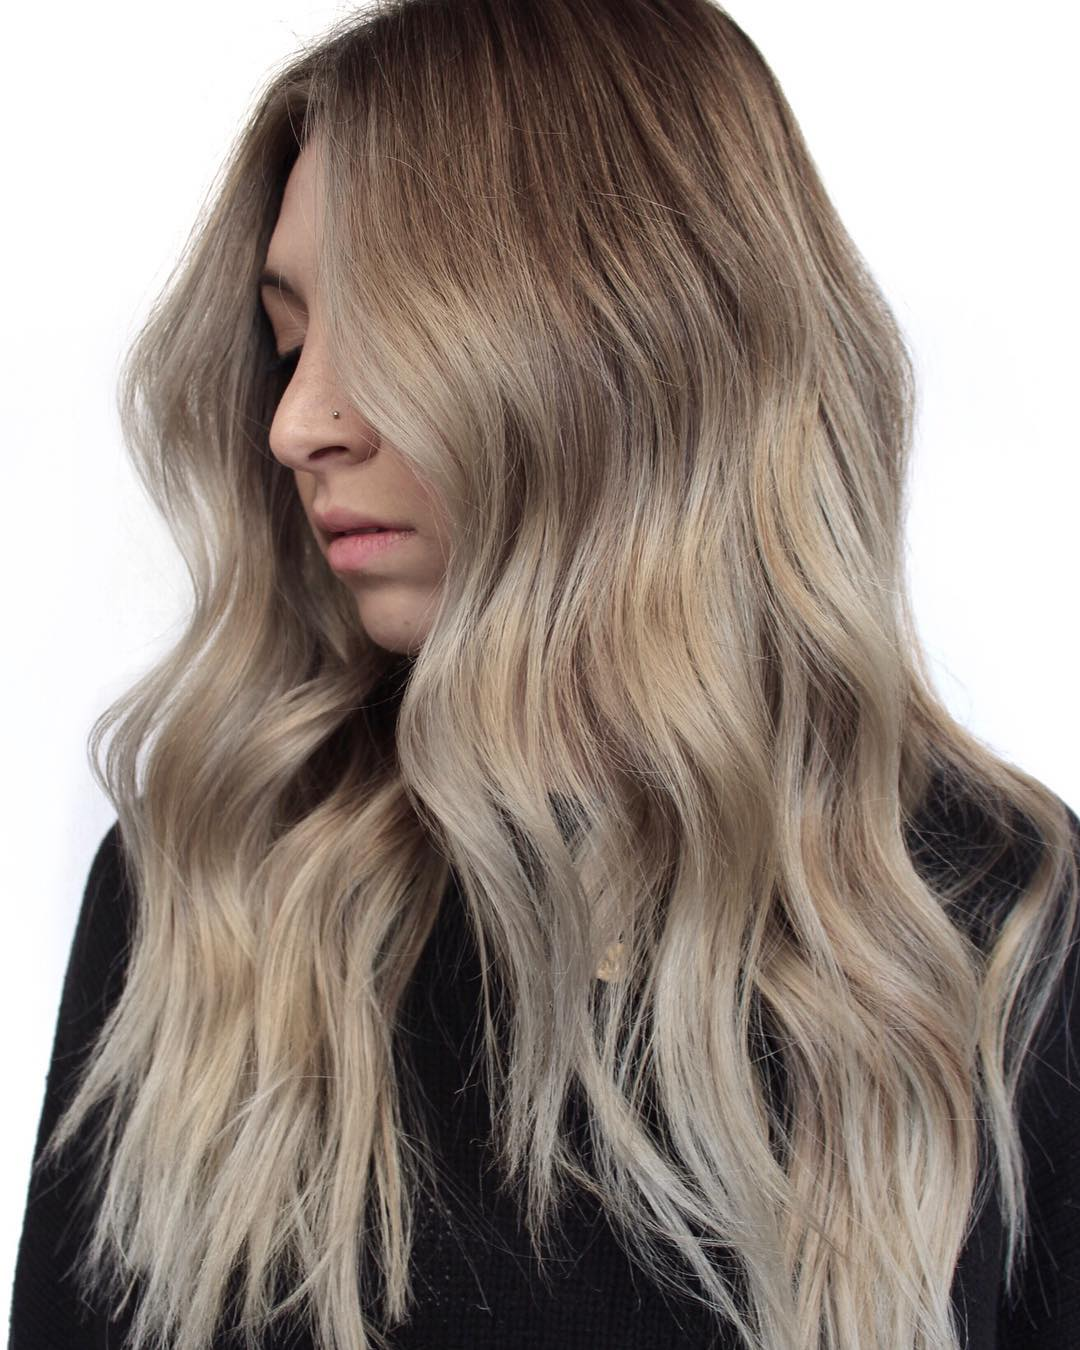 20 Beautiful Winter Hair Color: The Best Winter Hair Color Trends